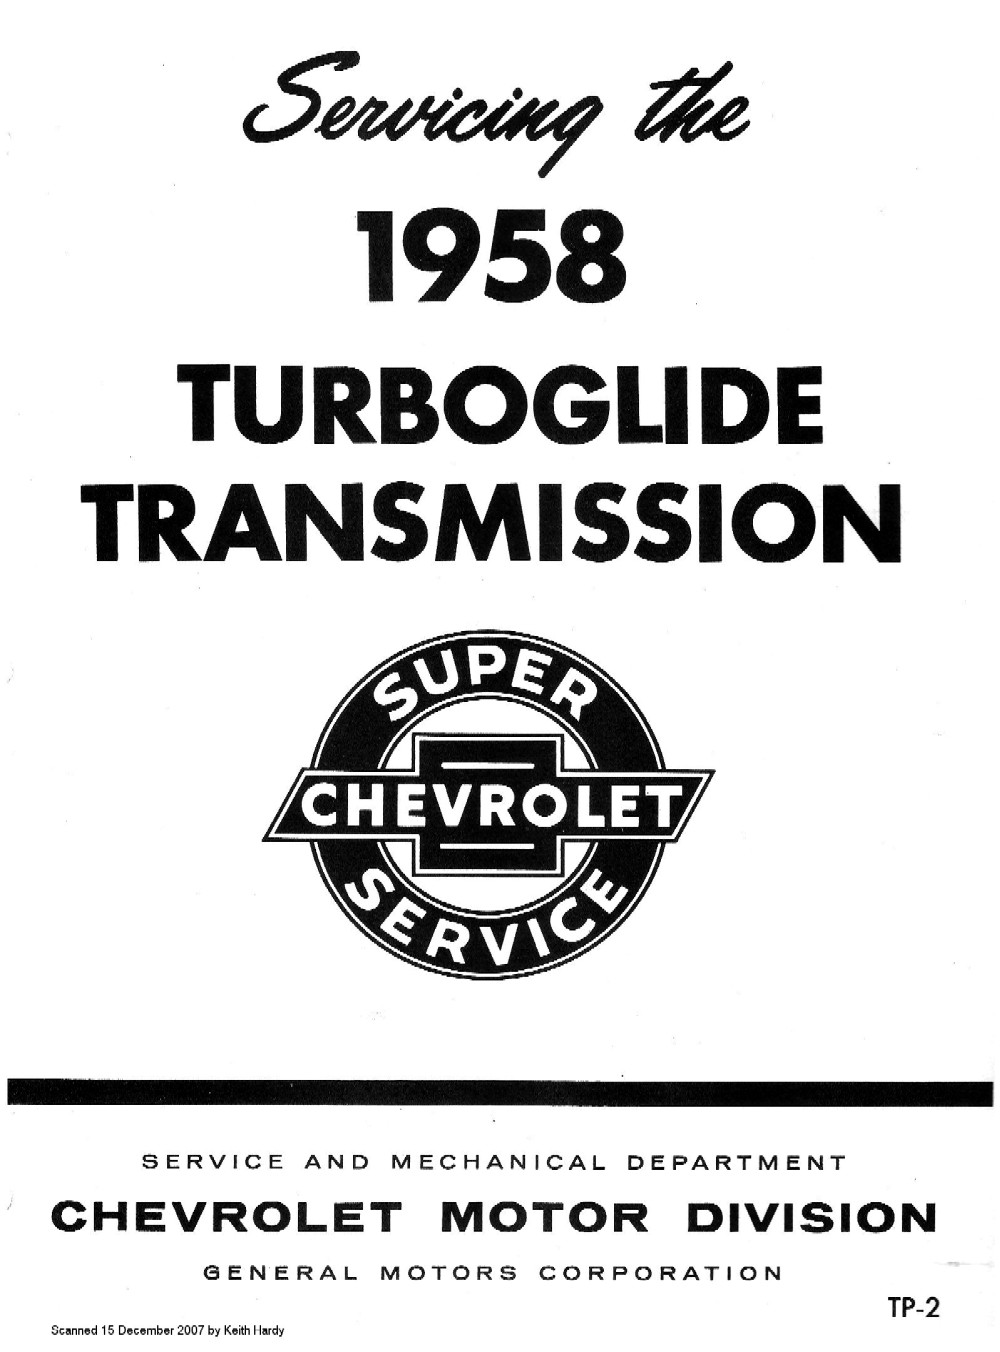 Chevrolet Servicing the 1958 Turboglide Transmission